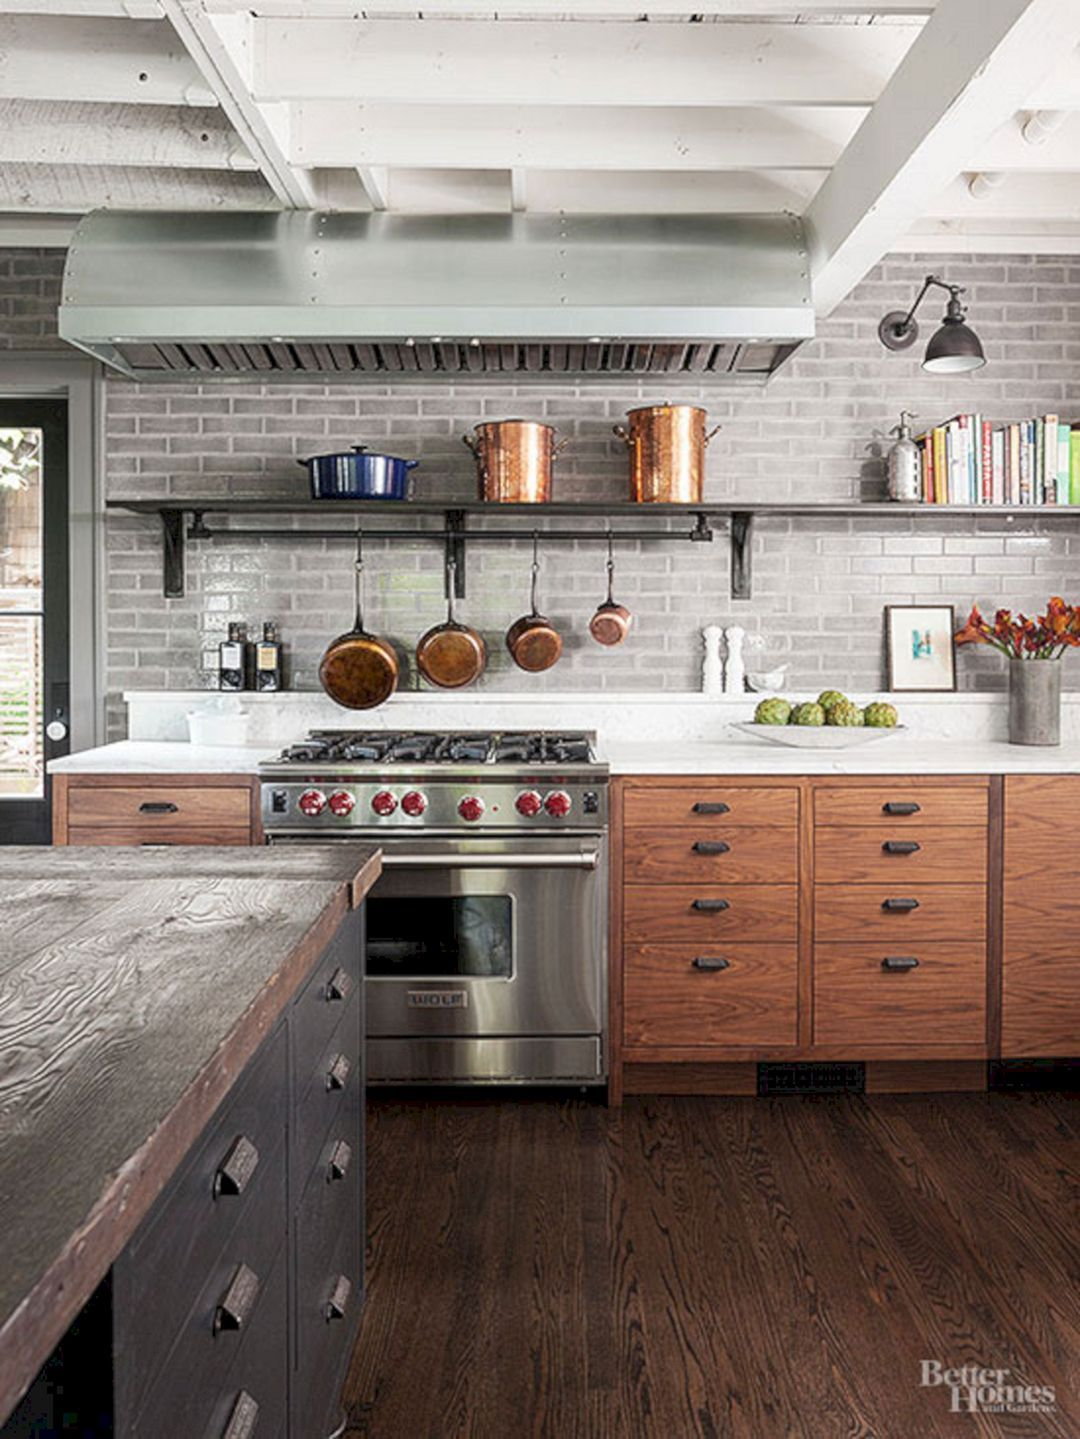 Amazing kitchen industry decorating ideas that will make you